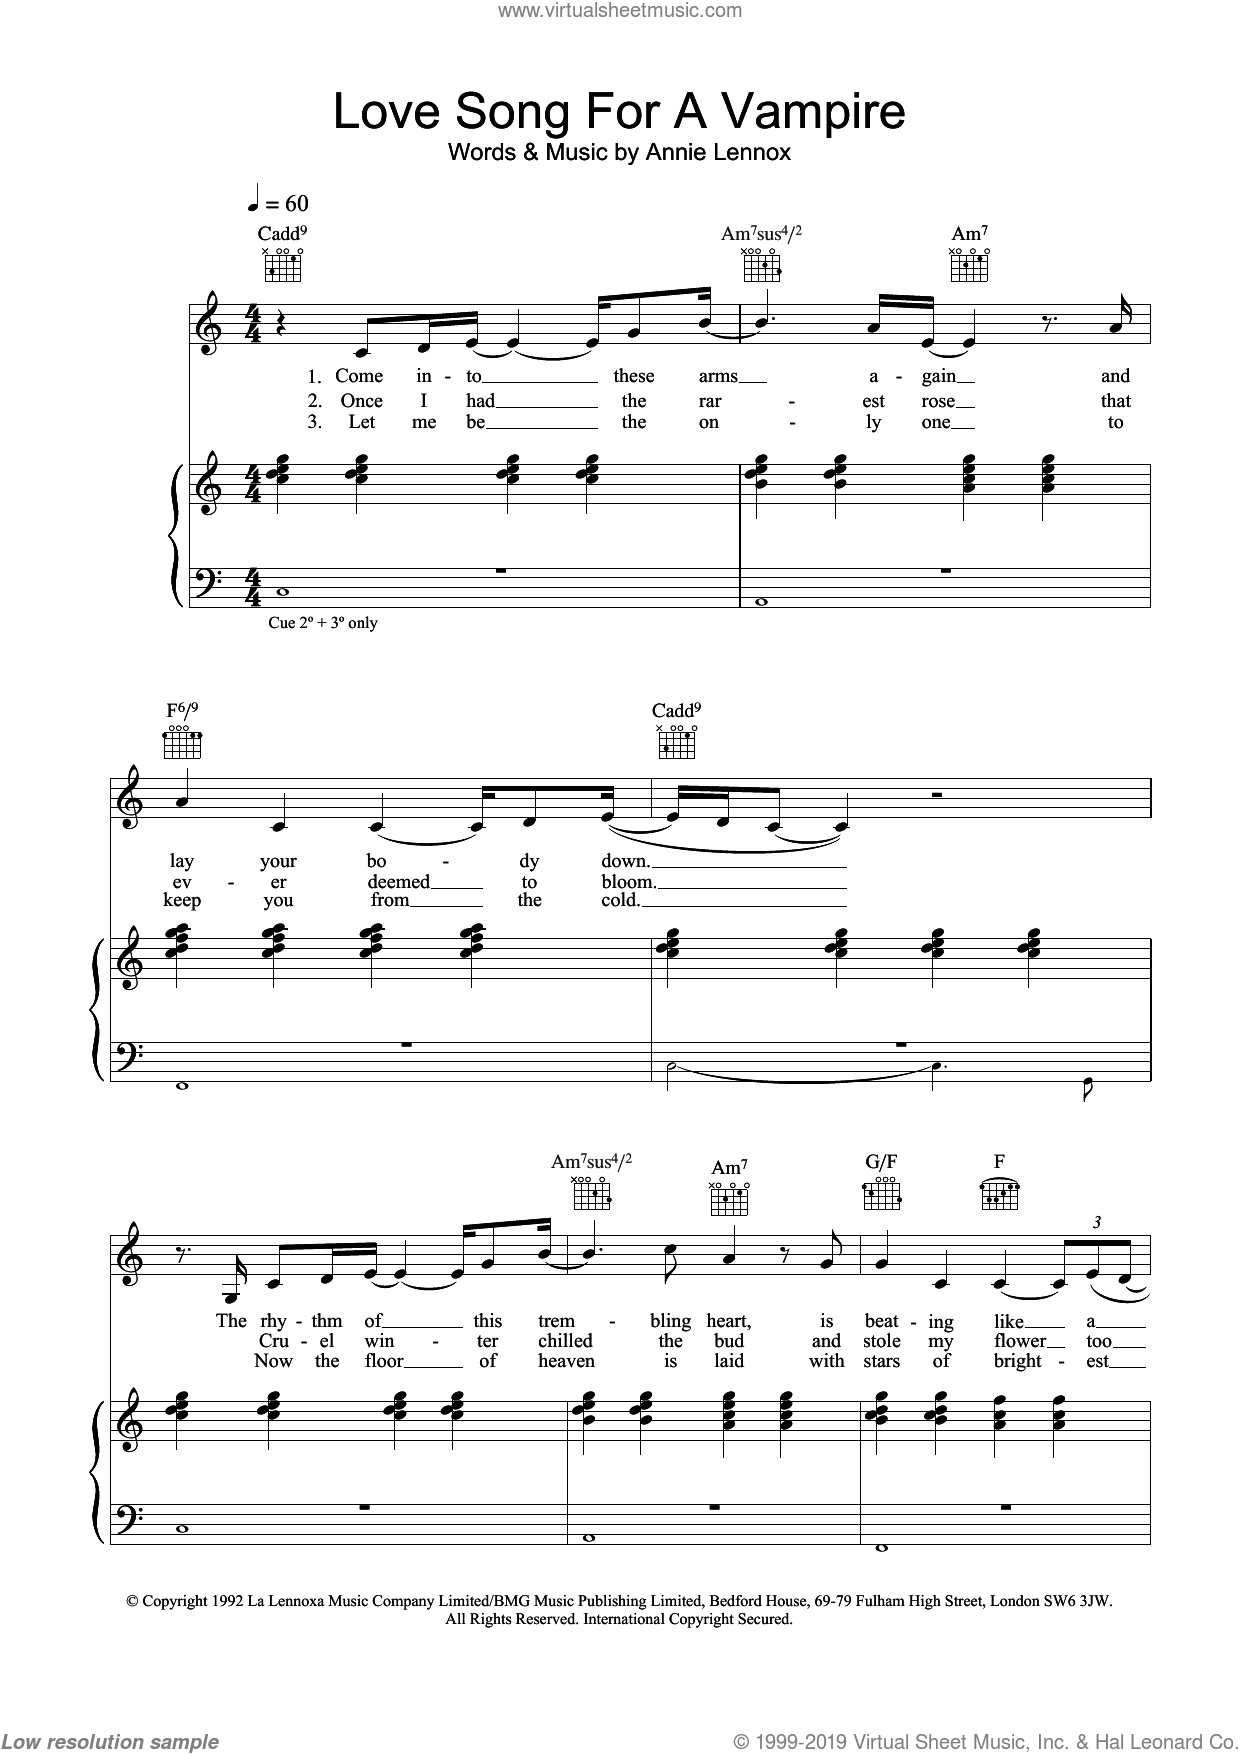 Love Song For A Vampire sheet music for voice, piano or guitar by Annie Lennox. Score Image Preview.